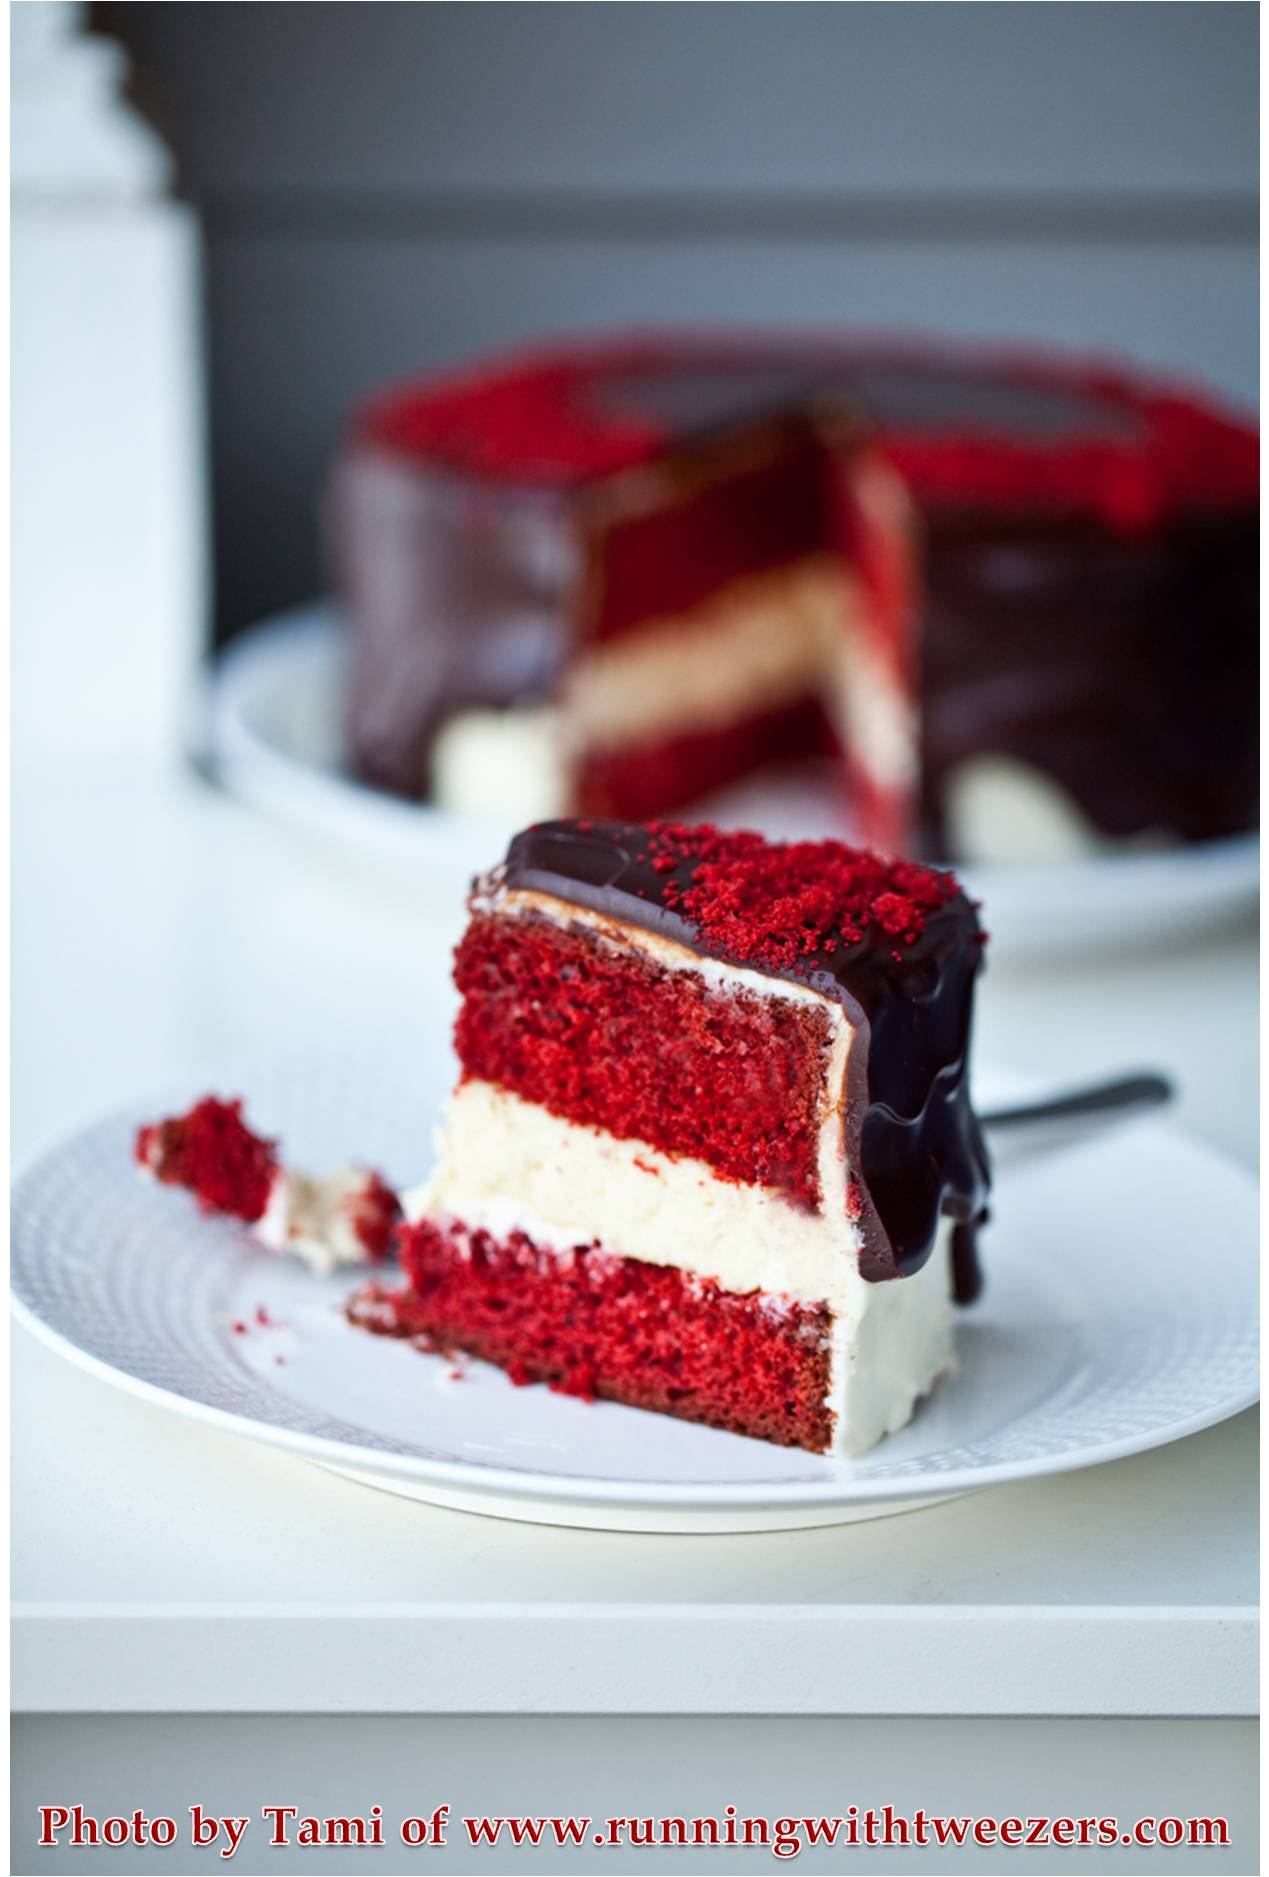 Red Velvet Cake with a Special Twist